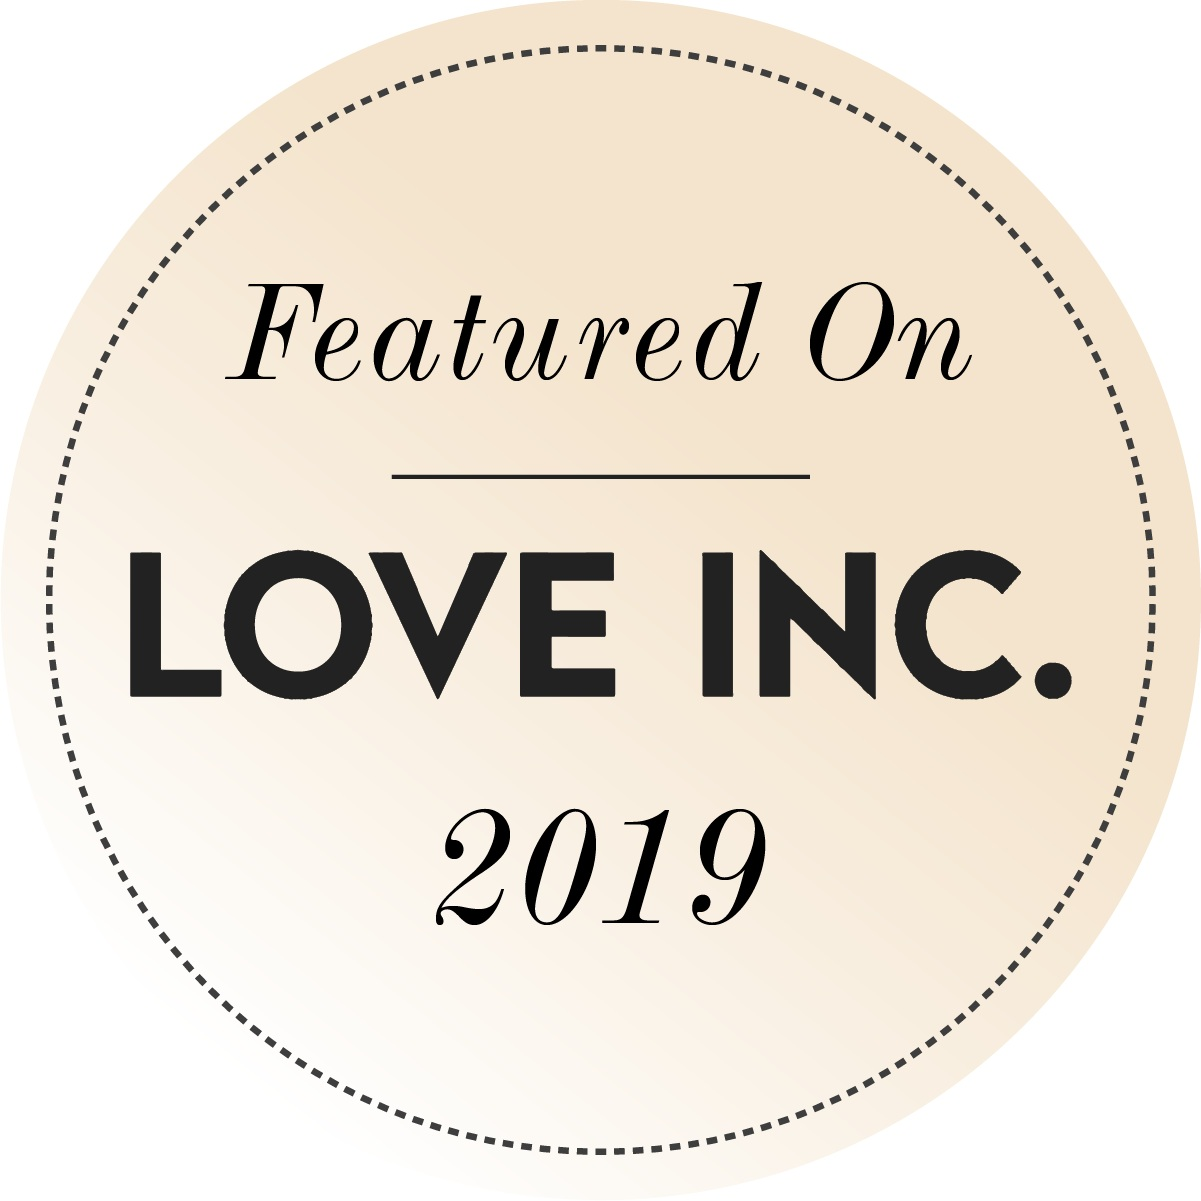 Love inc_2019 badge-01.png